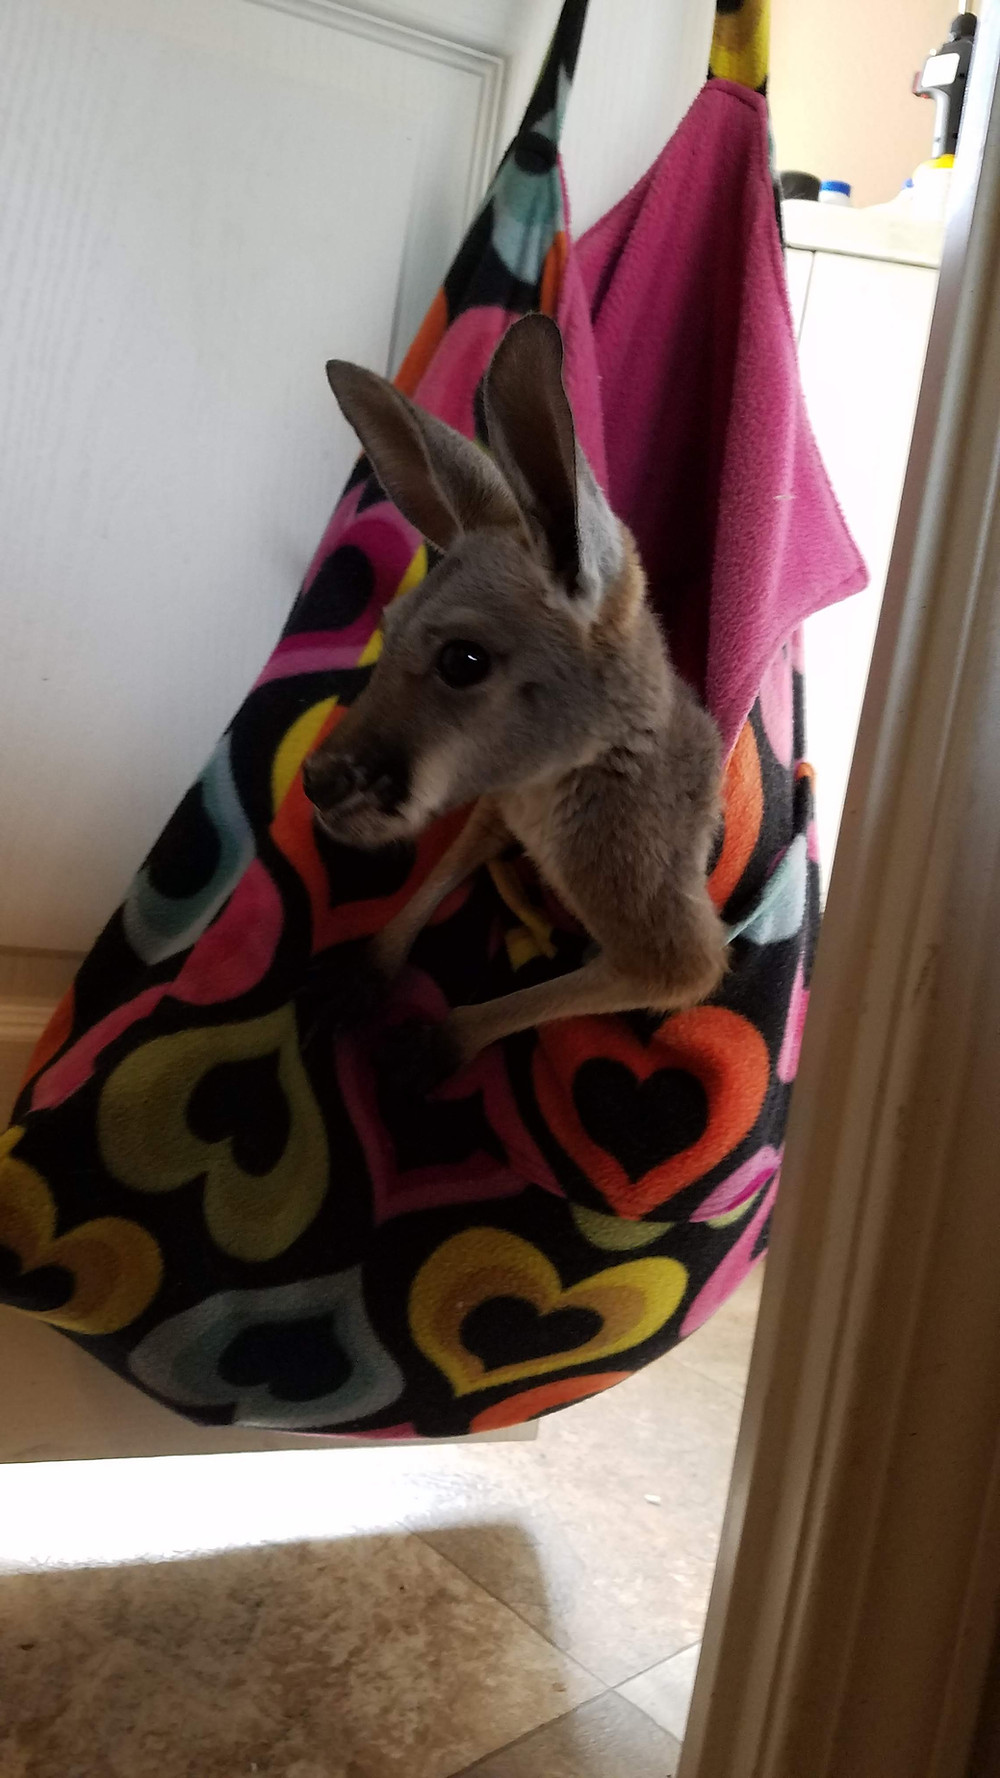 Kangaroo in Homemade Pouch